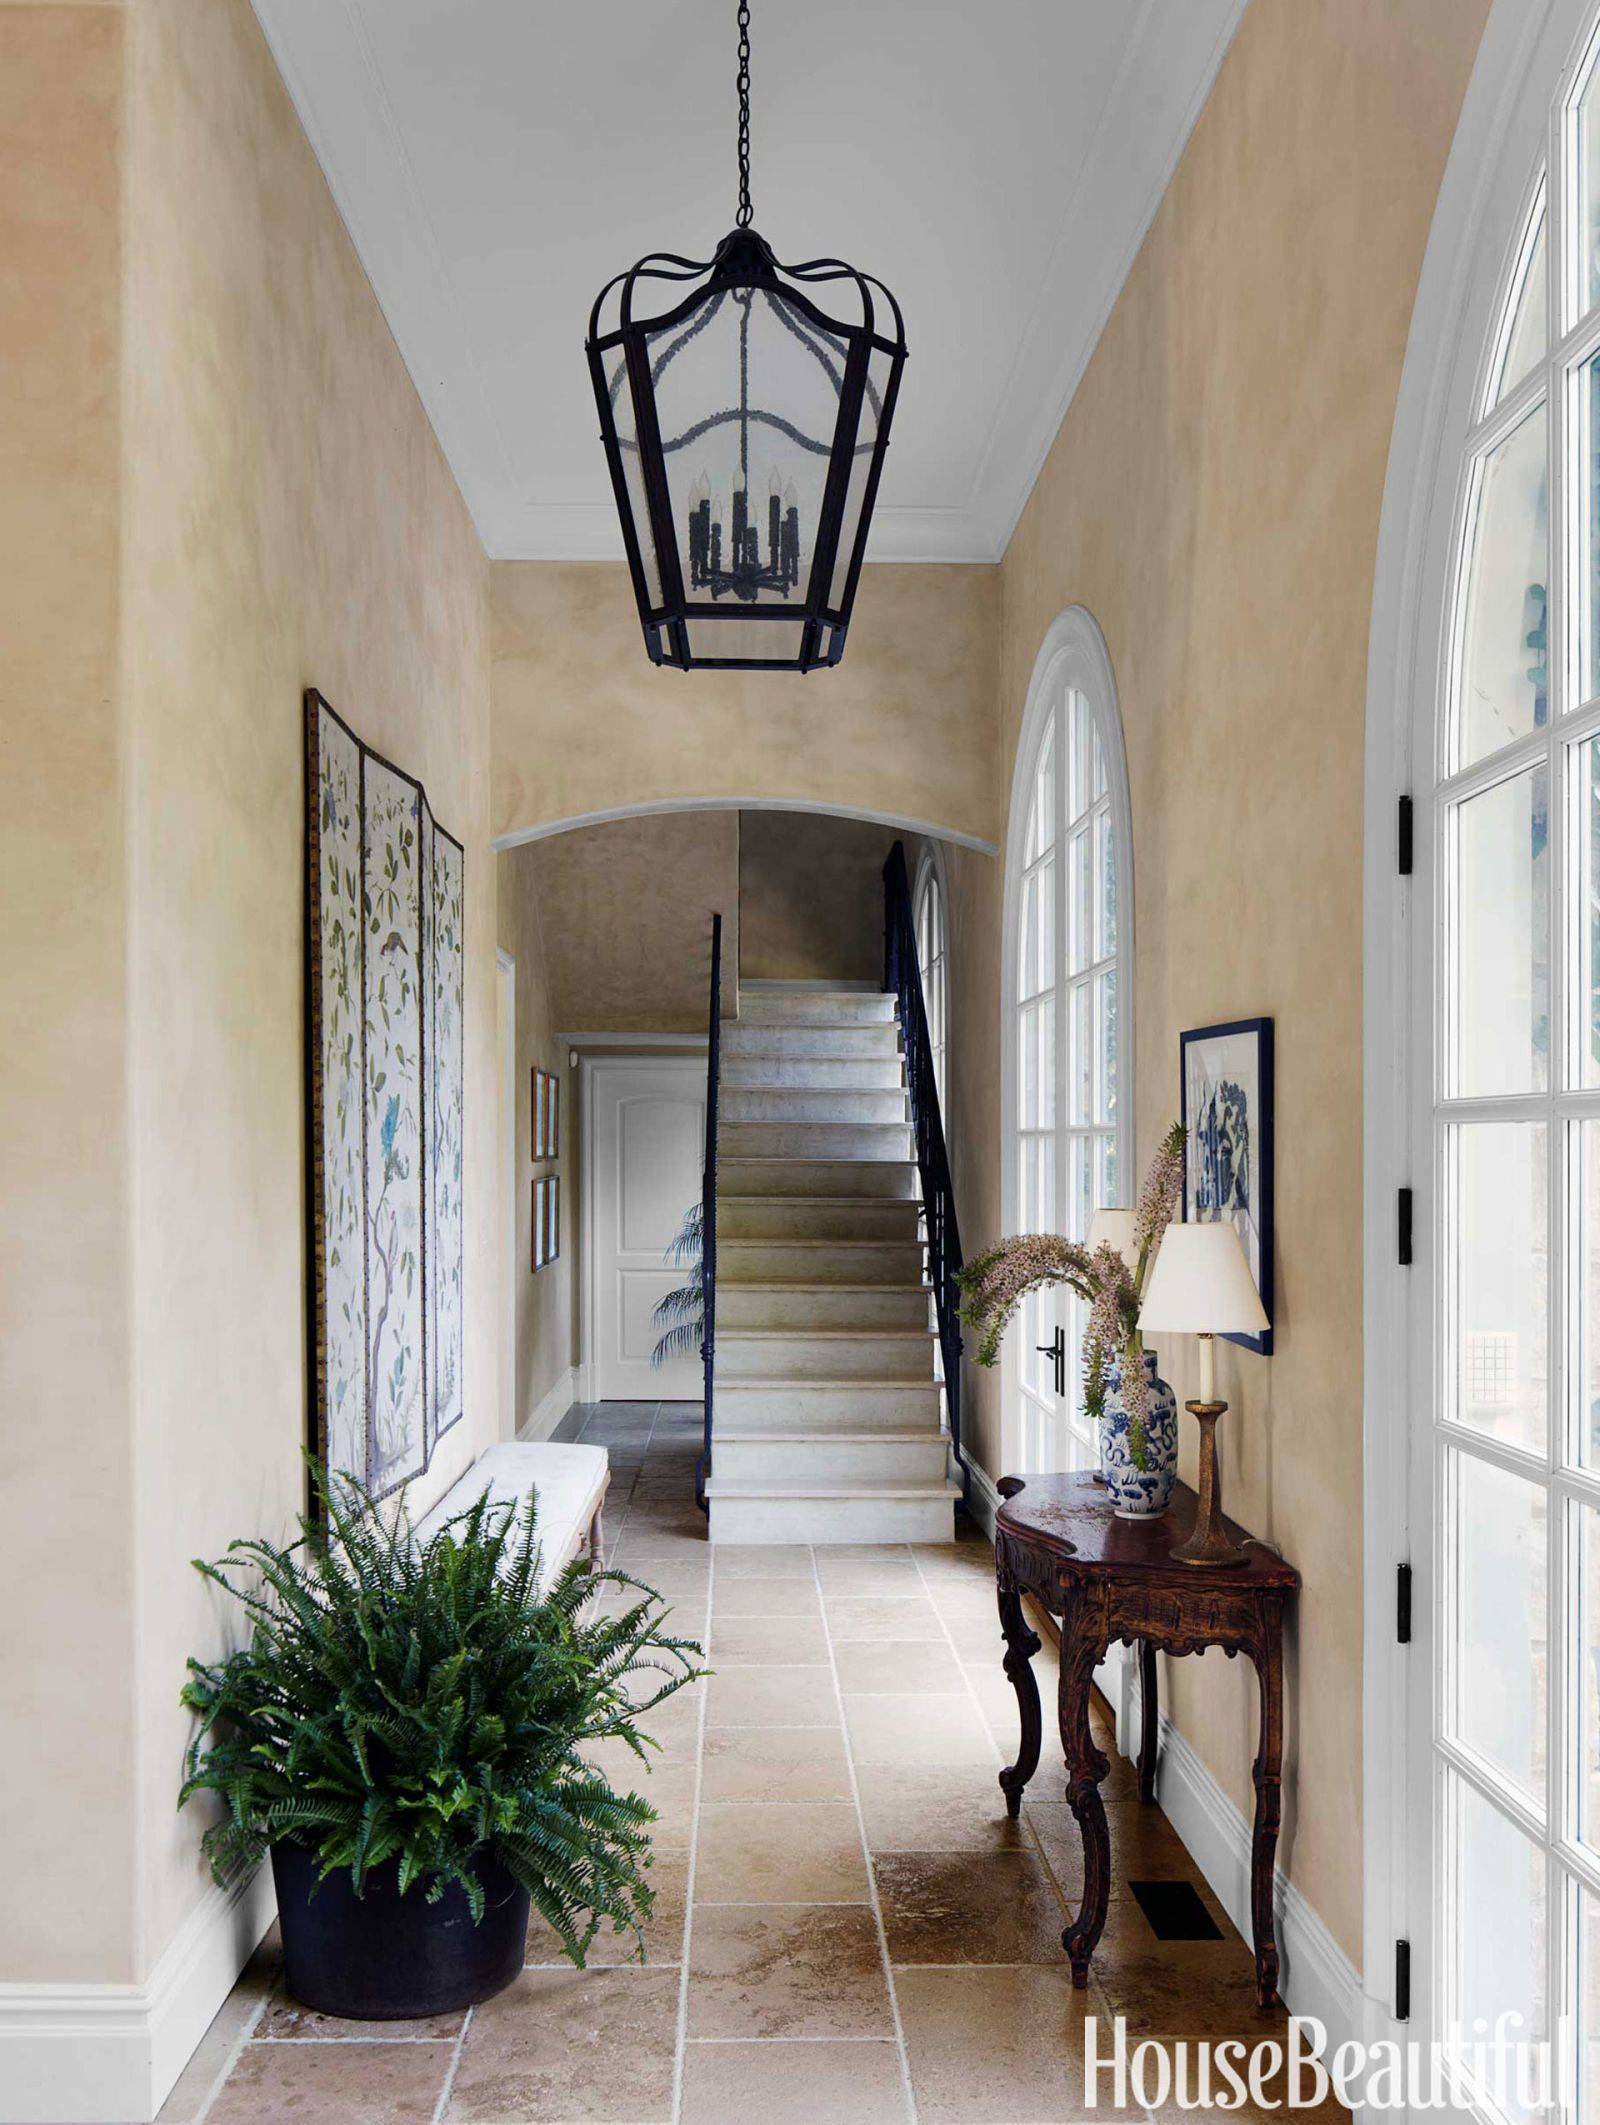 Ideas To Decorate Entrance Of Home Part - 19: 75+ Foyer Decorating Ideas - Design Pictures Of Foyers - House Beautiful